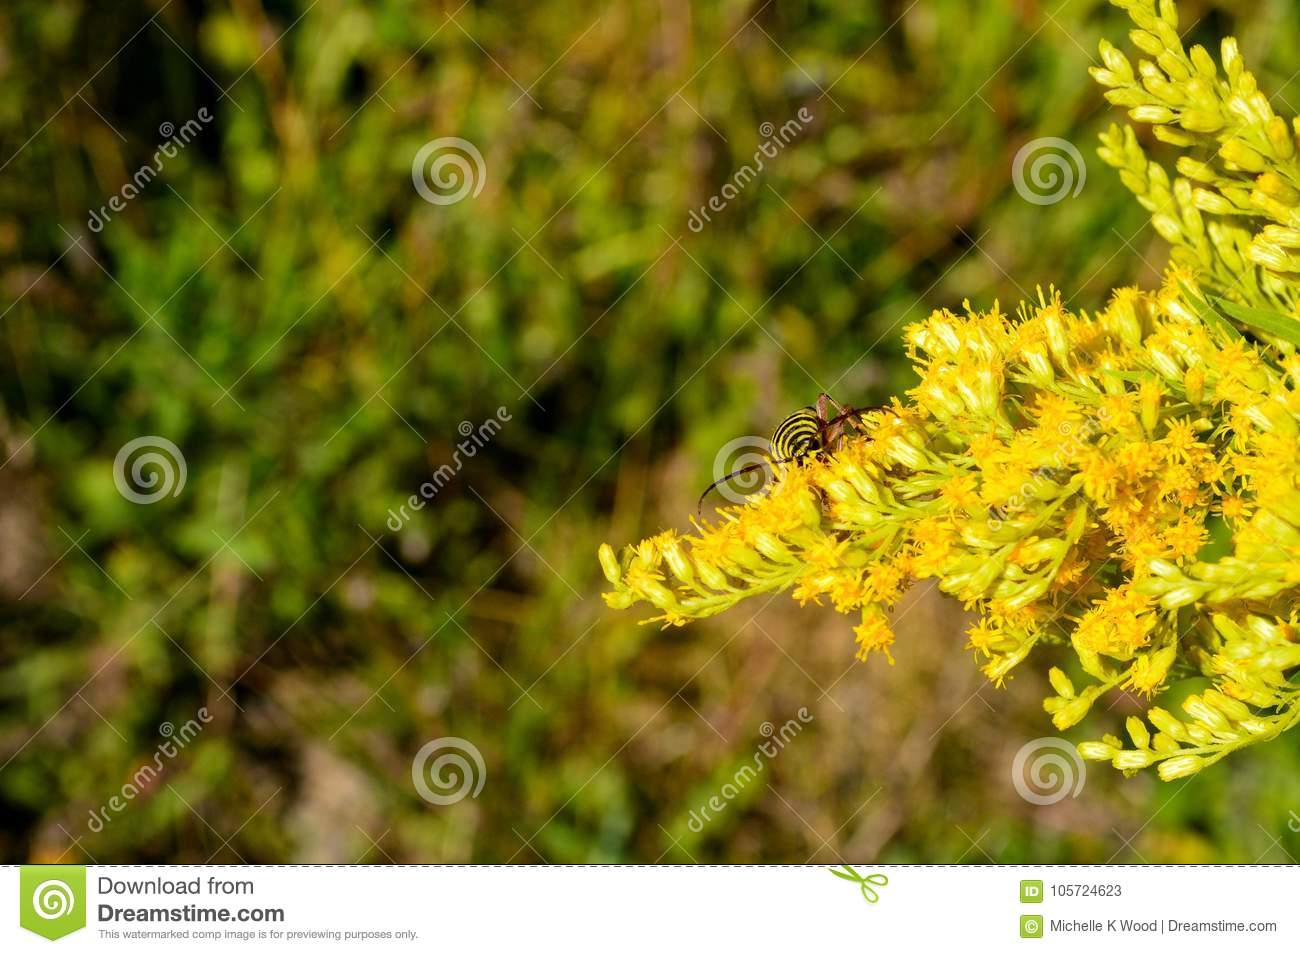 Locust borer longhorn beetle on goldenrod flowers